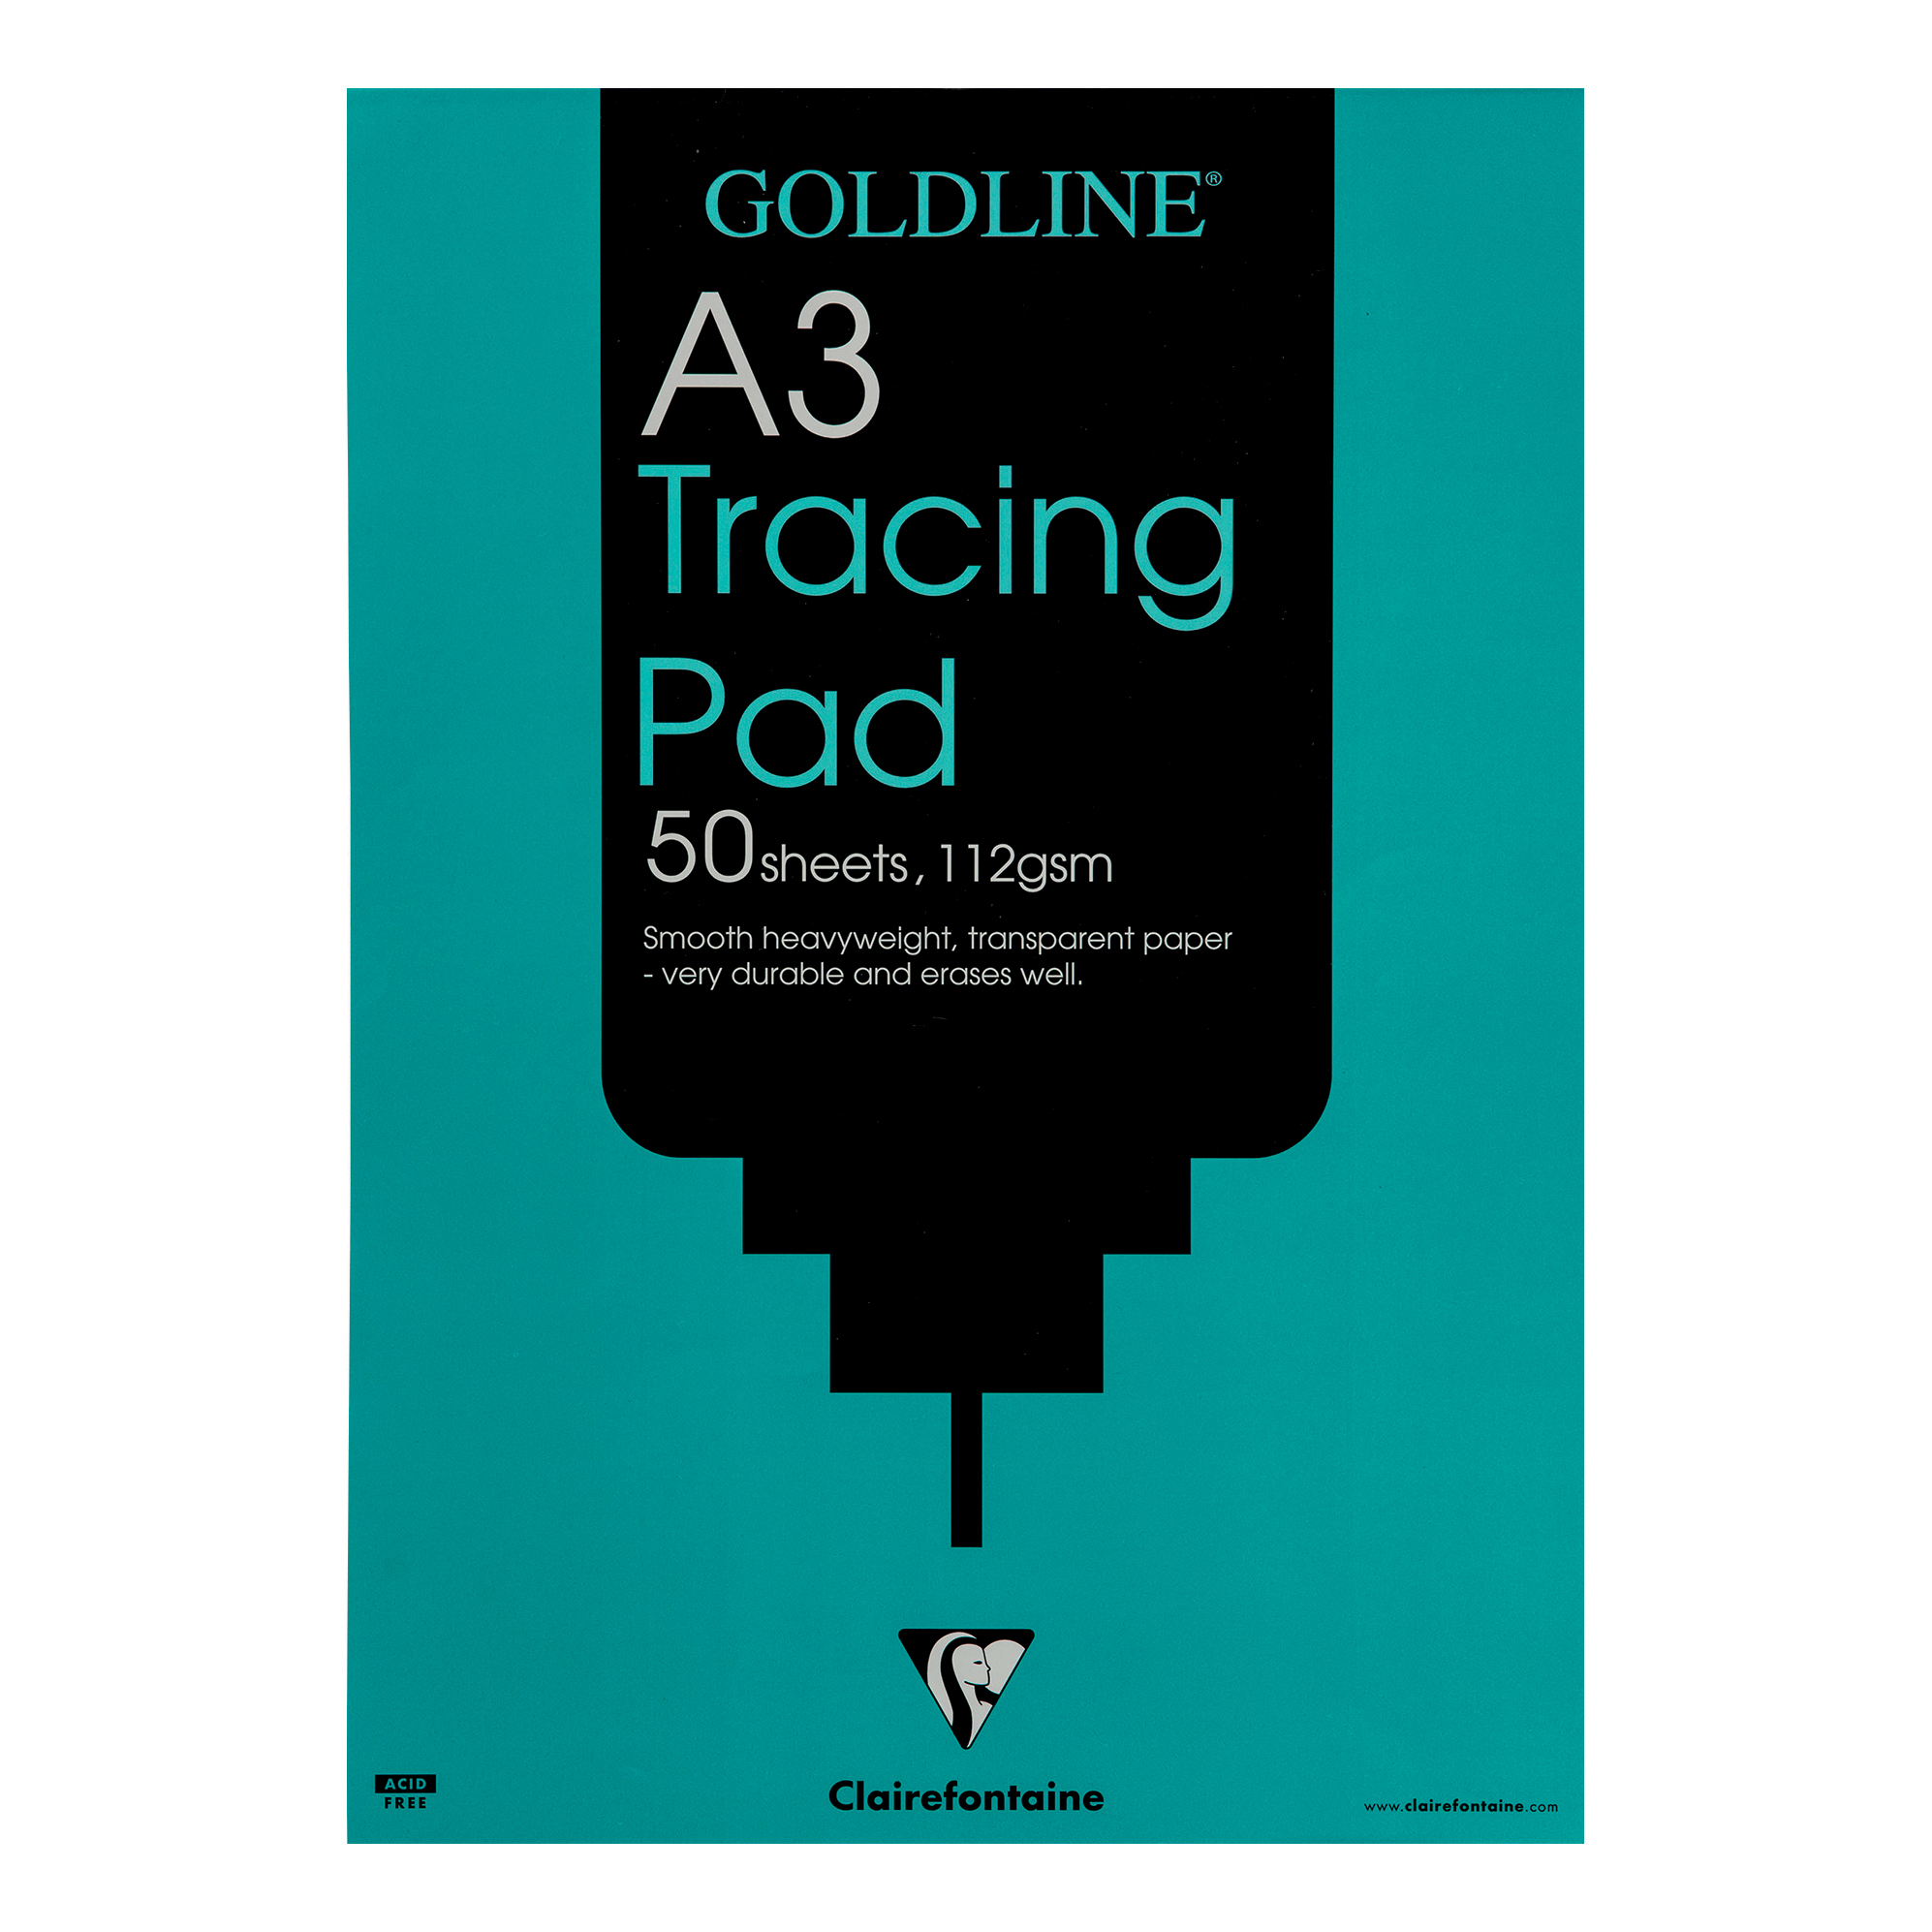 Tracing paper Goldline Heavyweight Tracing Pad 112gsm Acid-free Paper 50 Sheets A3 Ref GPT3A3Z Pack 5